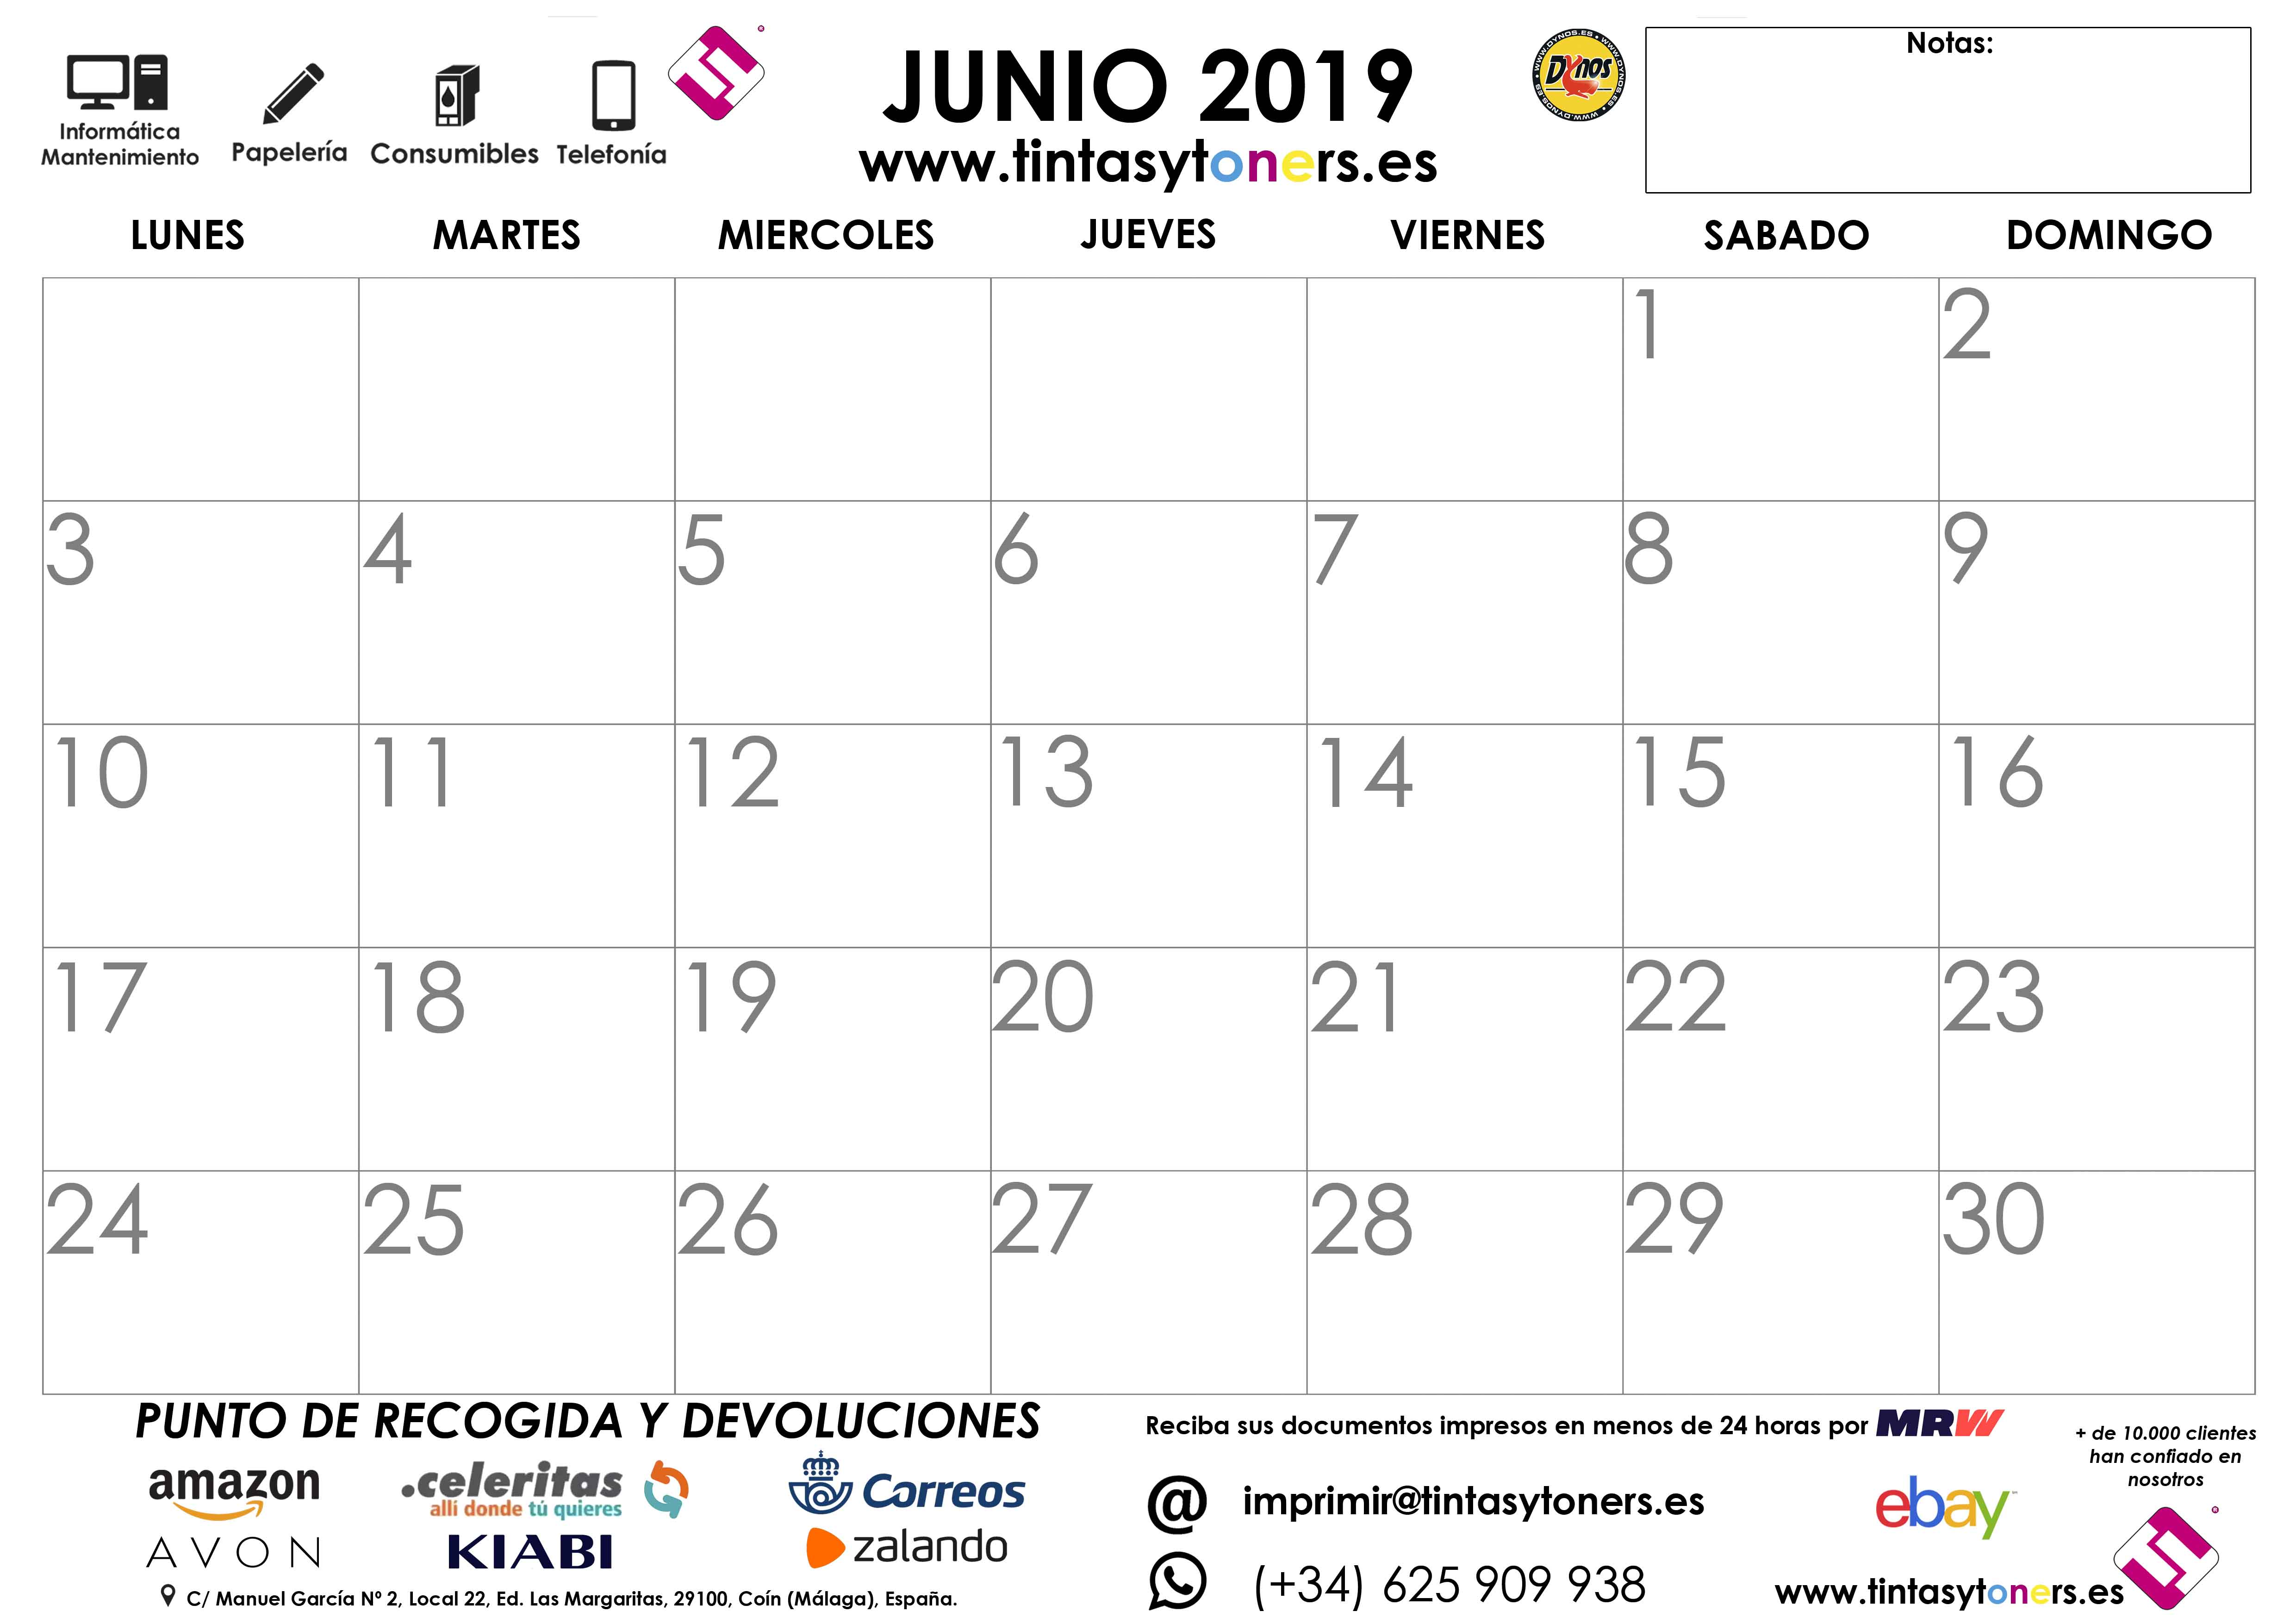 Calendario De Junio.Calendario Tintasytoners Din A4 Din A3 Gratis Para Descargar Junio